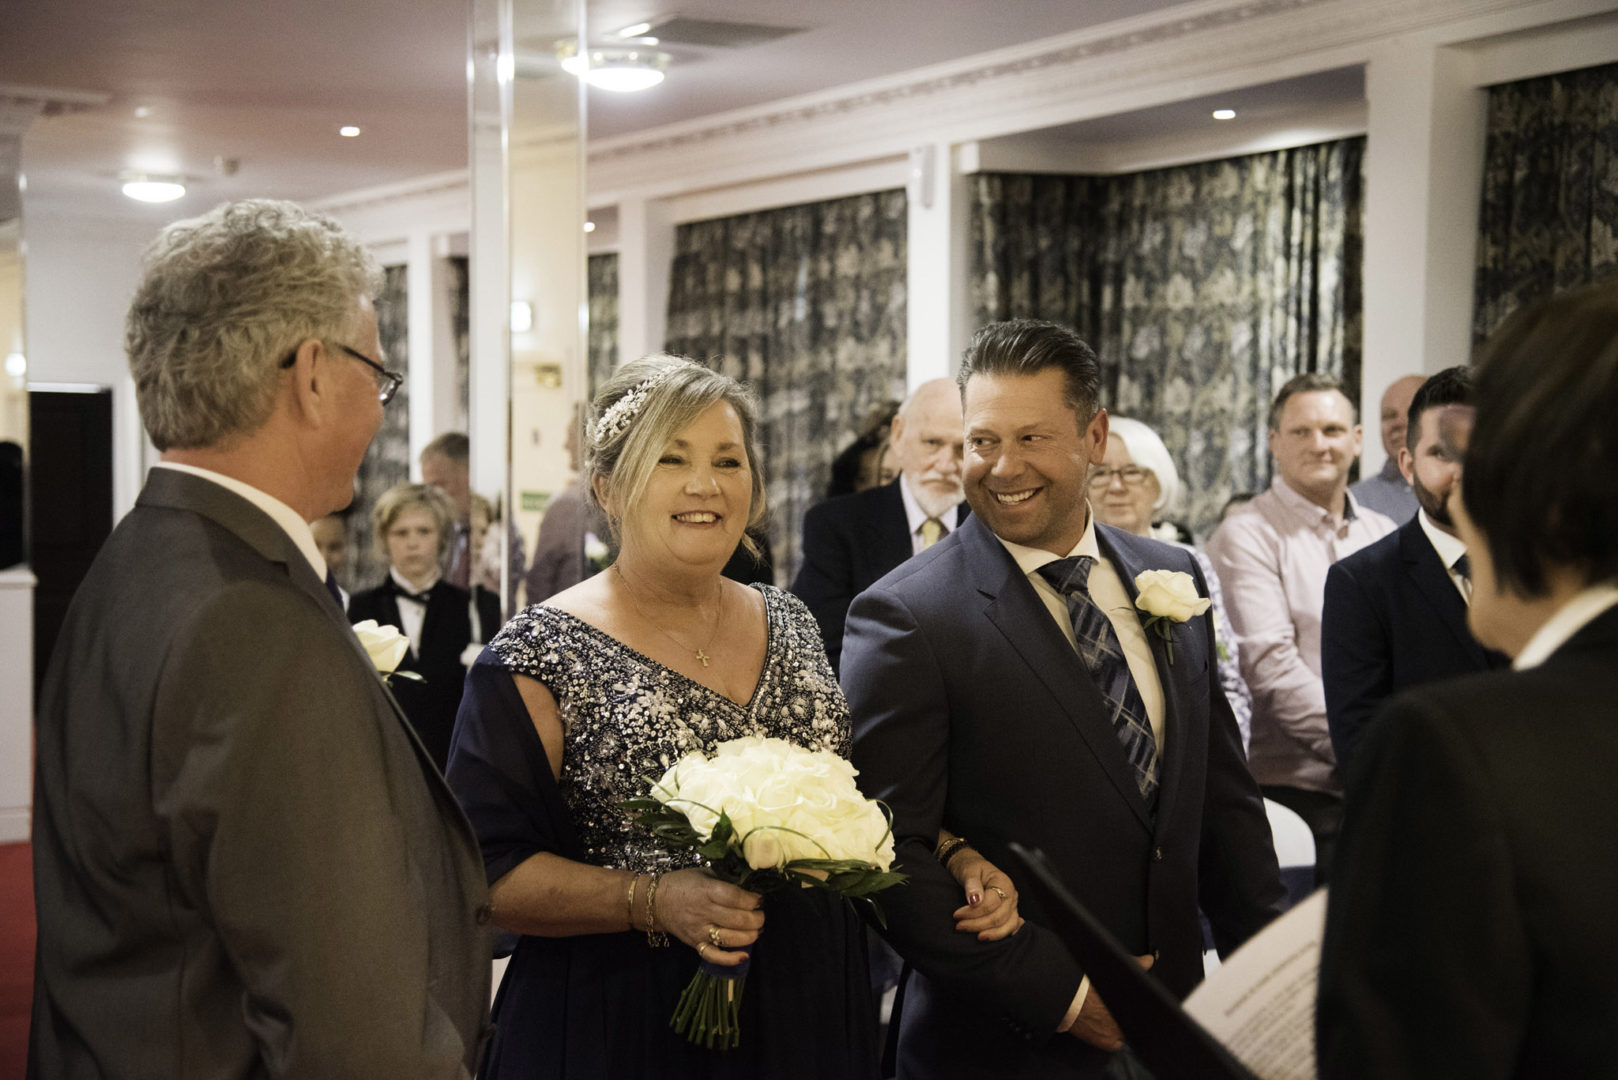 Smiles all round as Lynn stands with Doug ready to renew their vows. Photo by AJTImages. Wedding vow renewal at The Royal Court Hotel